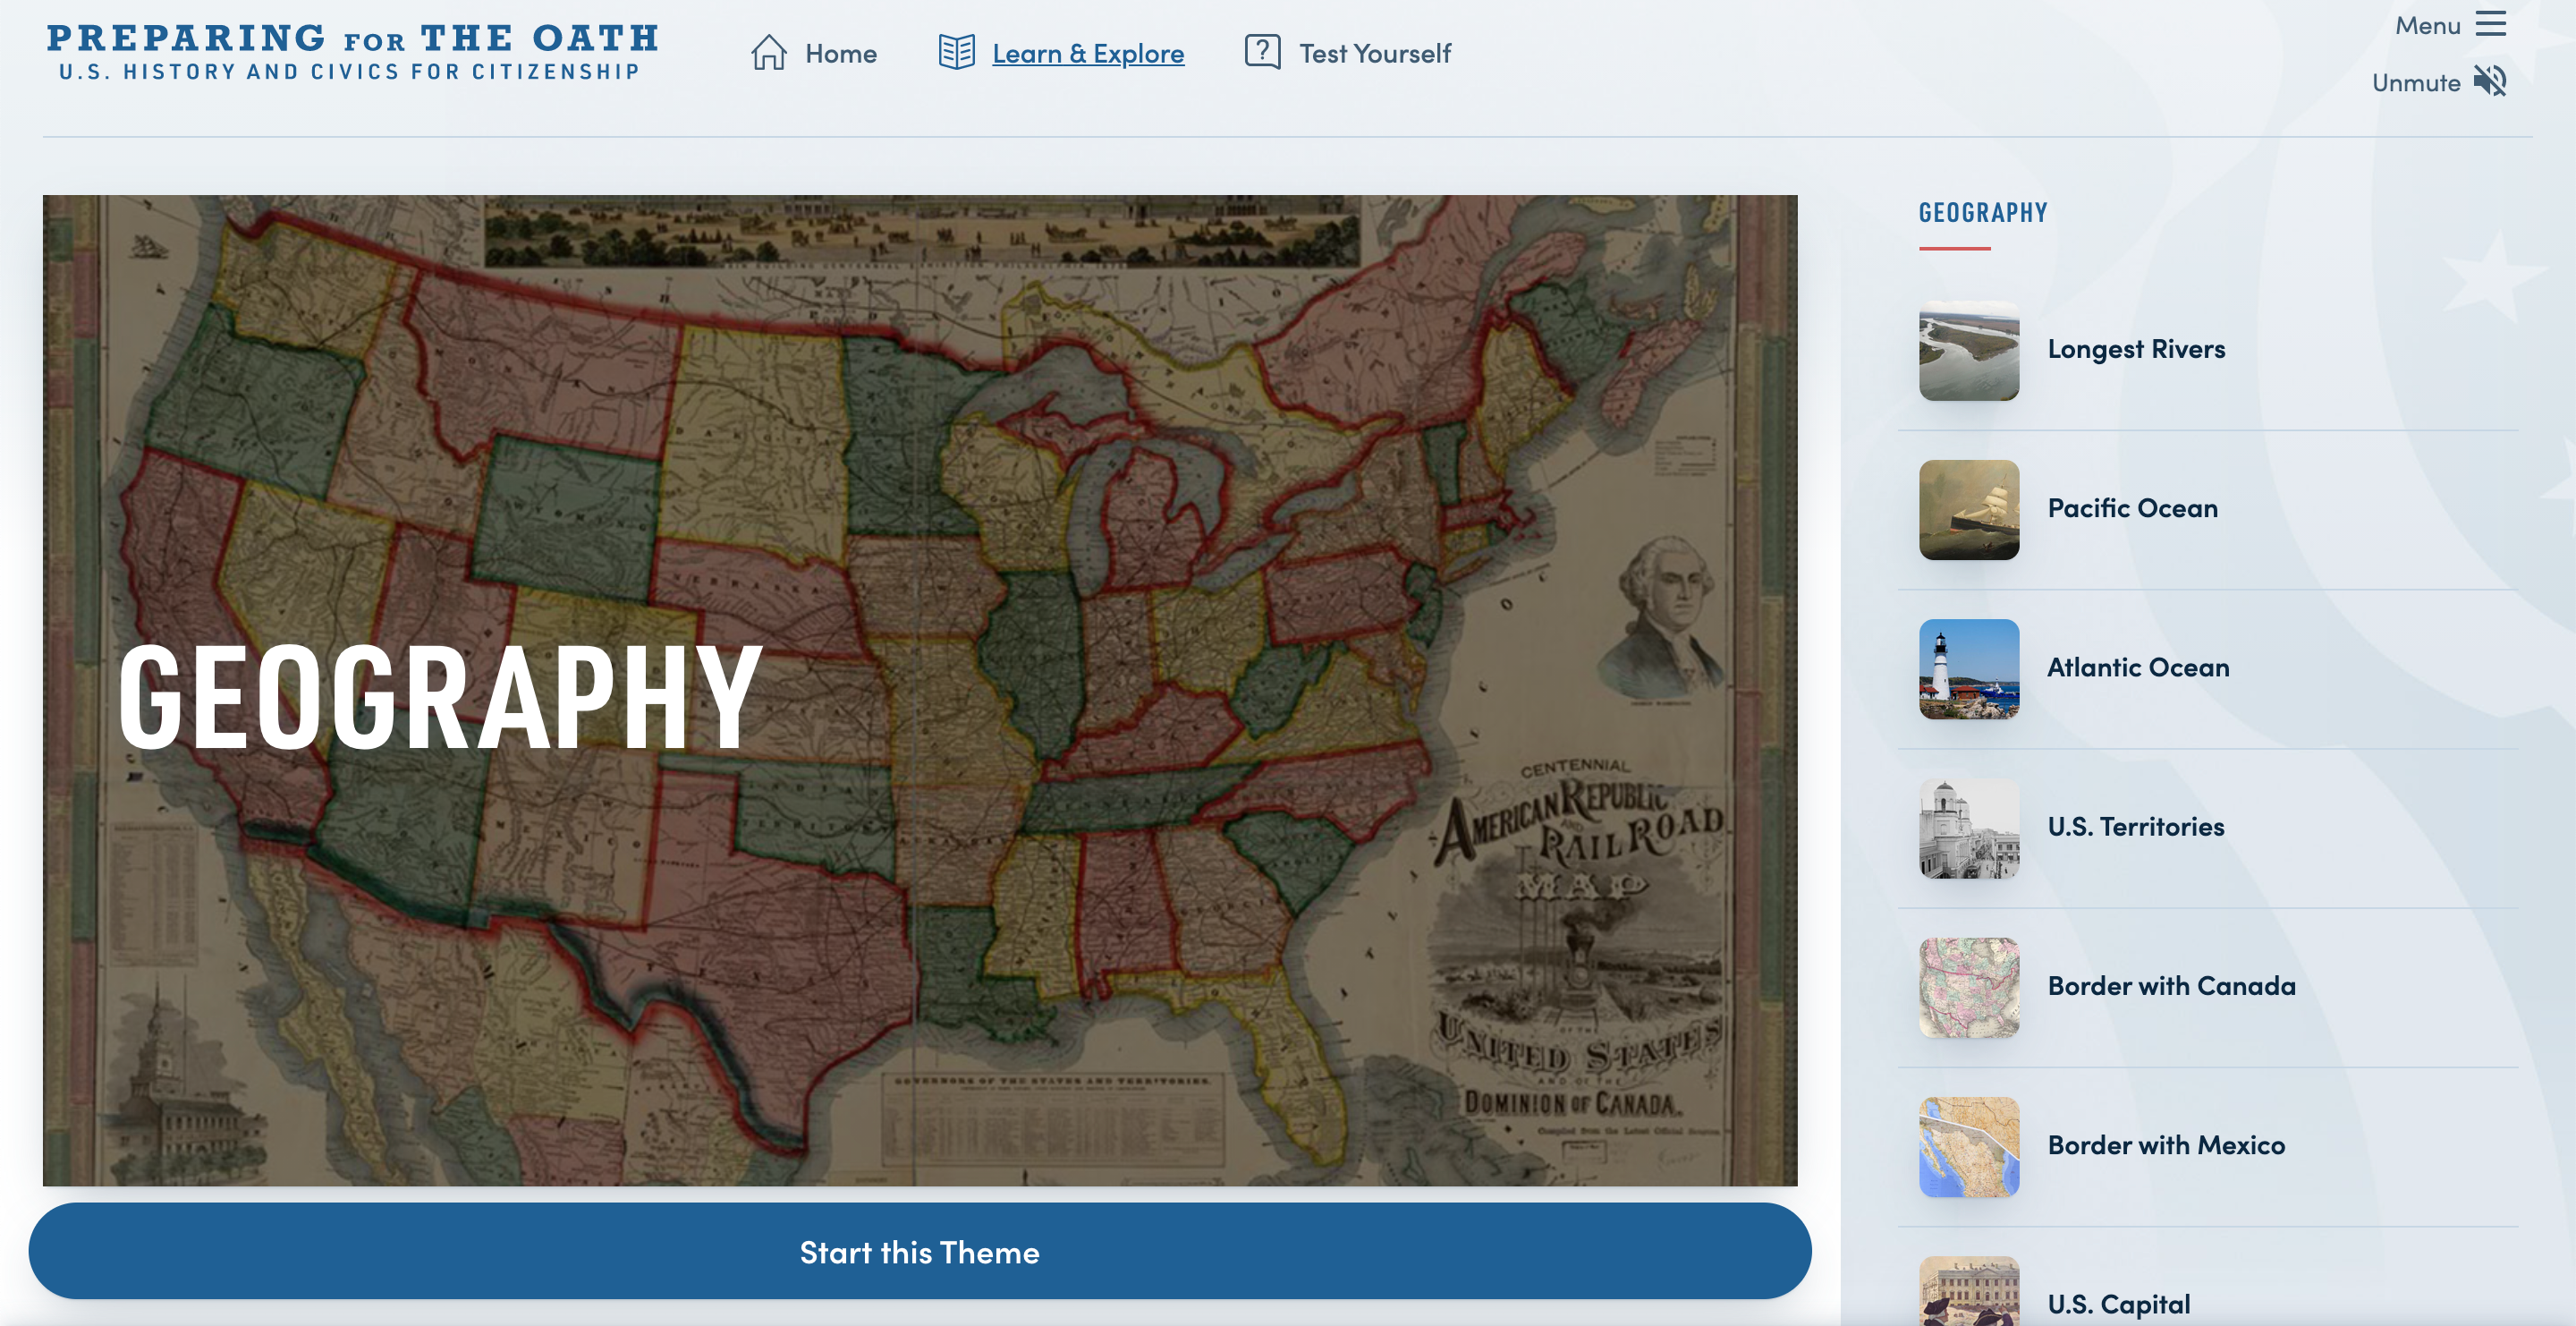 Thumbnail image of Preparing for the Oath: Geography resource